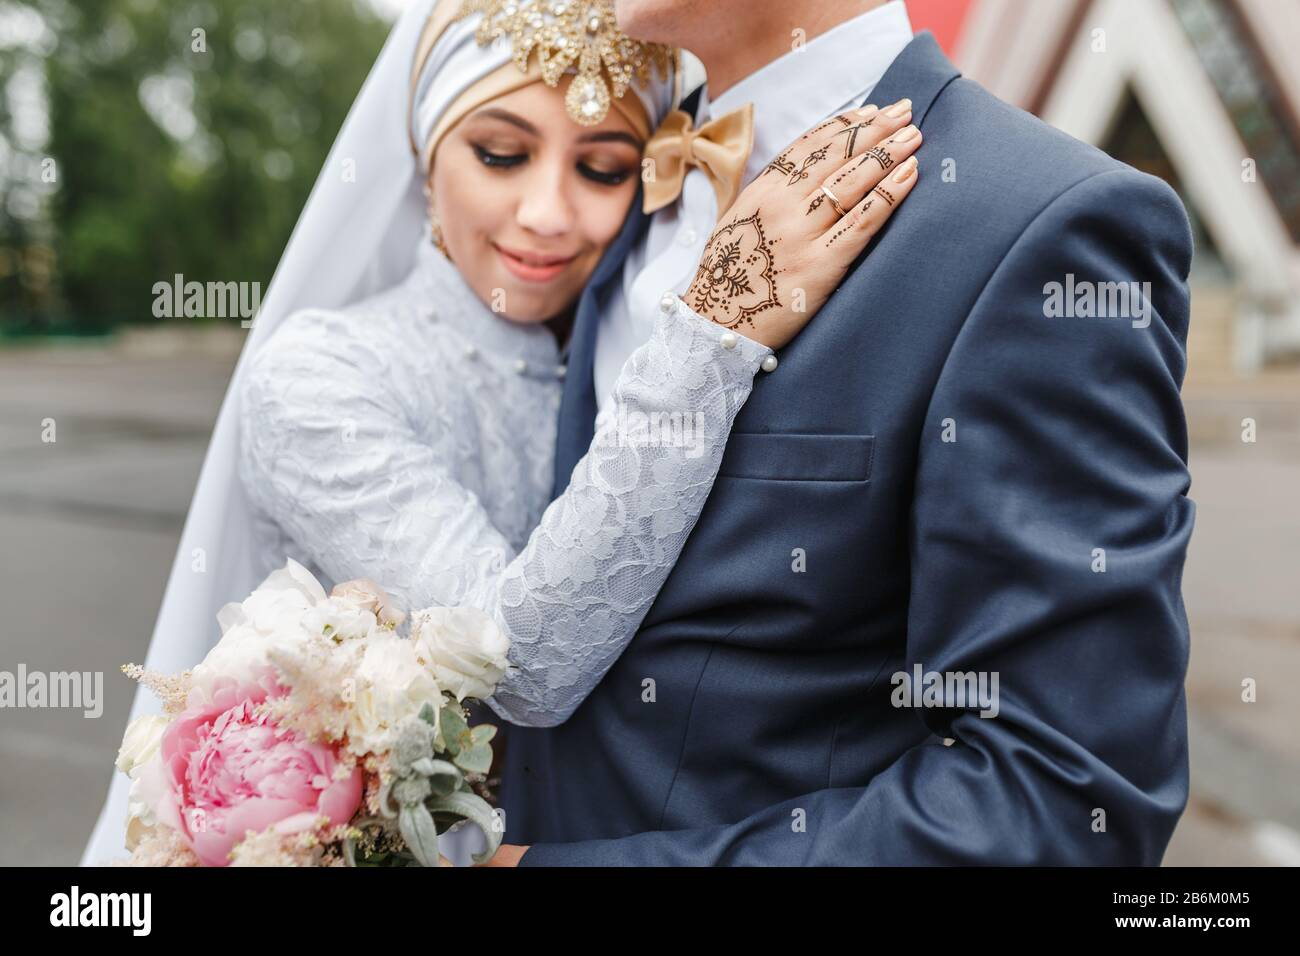 Nikah High Resolution Stock Photography and Images   Alamy